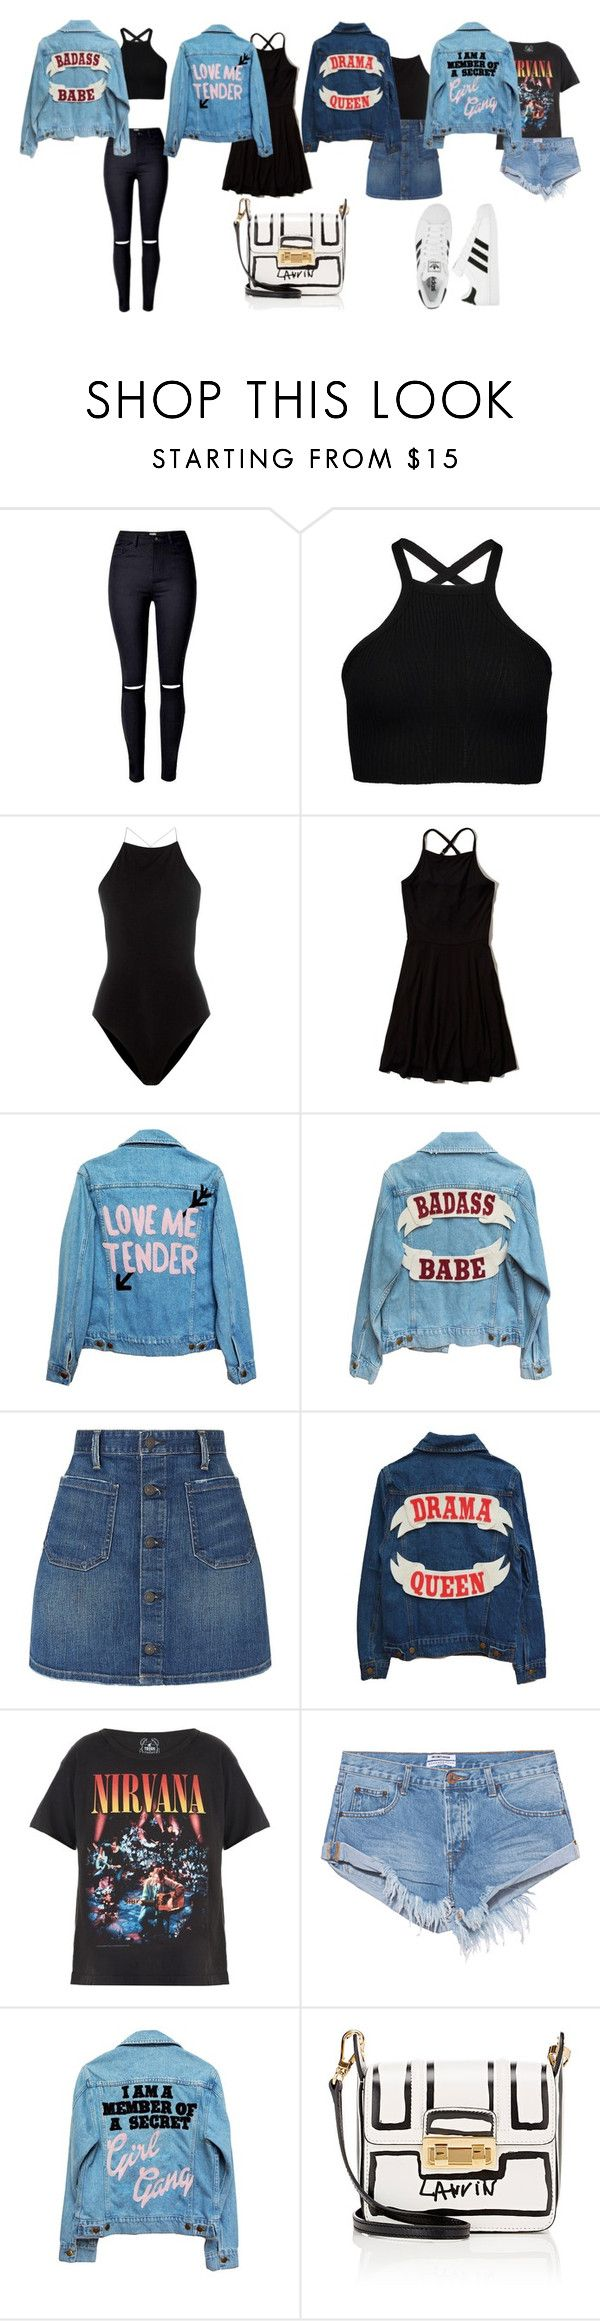 """denim jackets"" by san-yay on Polyvore featuring T By Alexander Wang, Hollister Co., High Heels Suicide, Denim & Supply by Ralph Lauren, Trunk LTD, OneTeaspoon, adidas, Lanvin, denim and denimjackets"